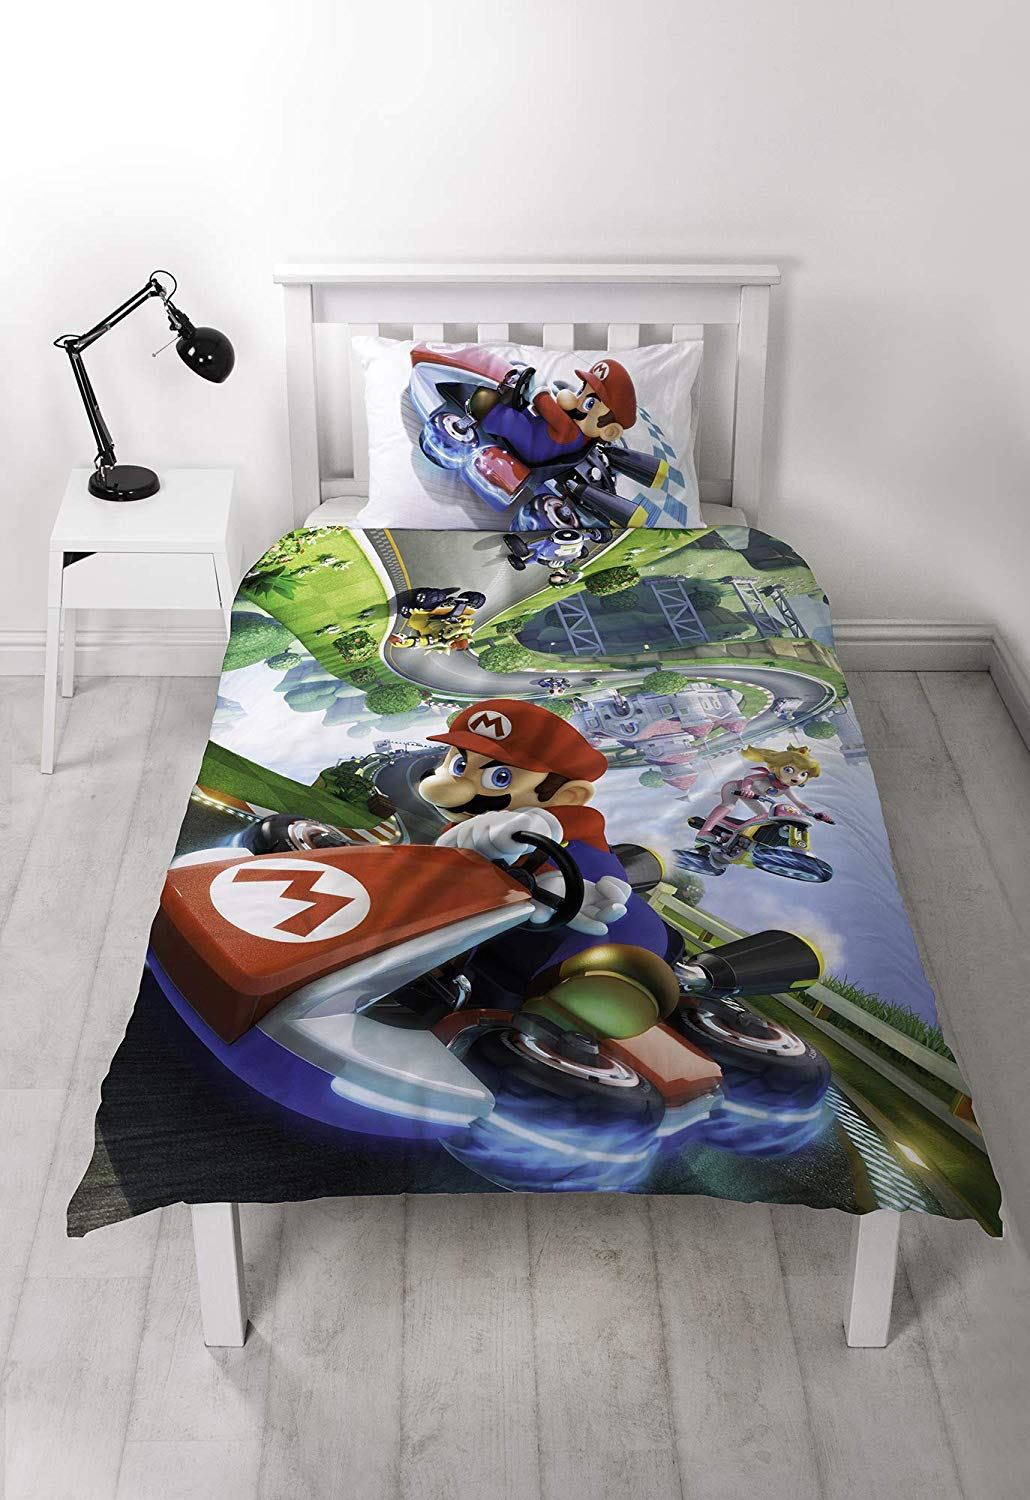 Official-Nintendo-Super-Mario-Licensed-Duvet-Covers-Single-Double-Odyssey-Maker thumbnail 11